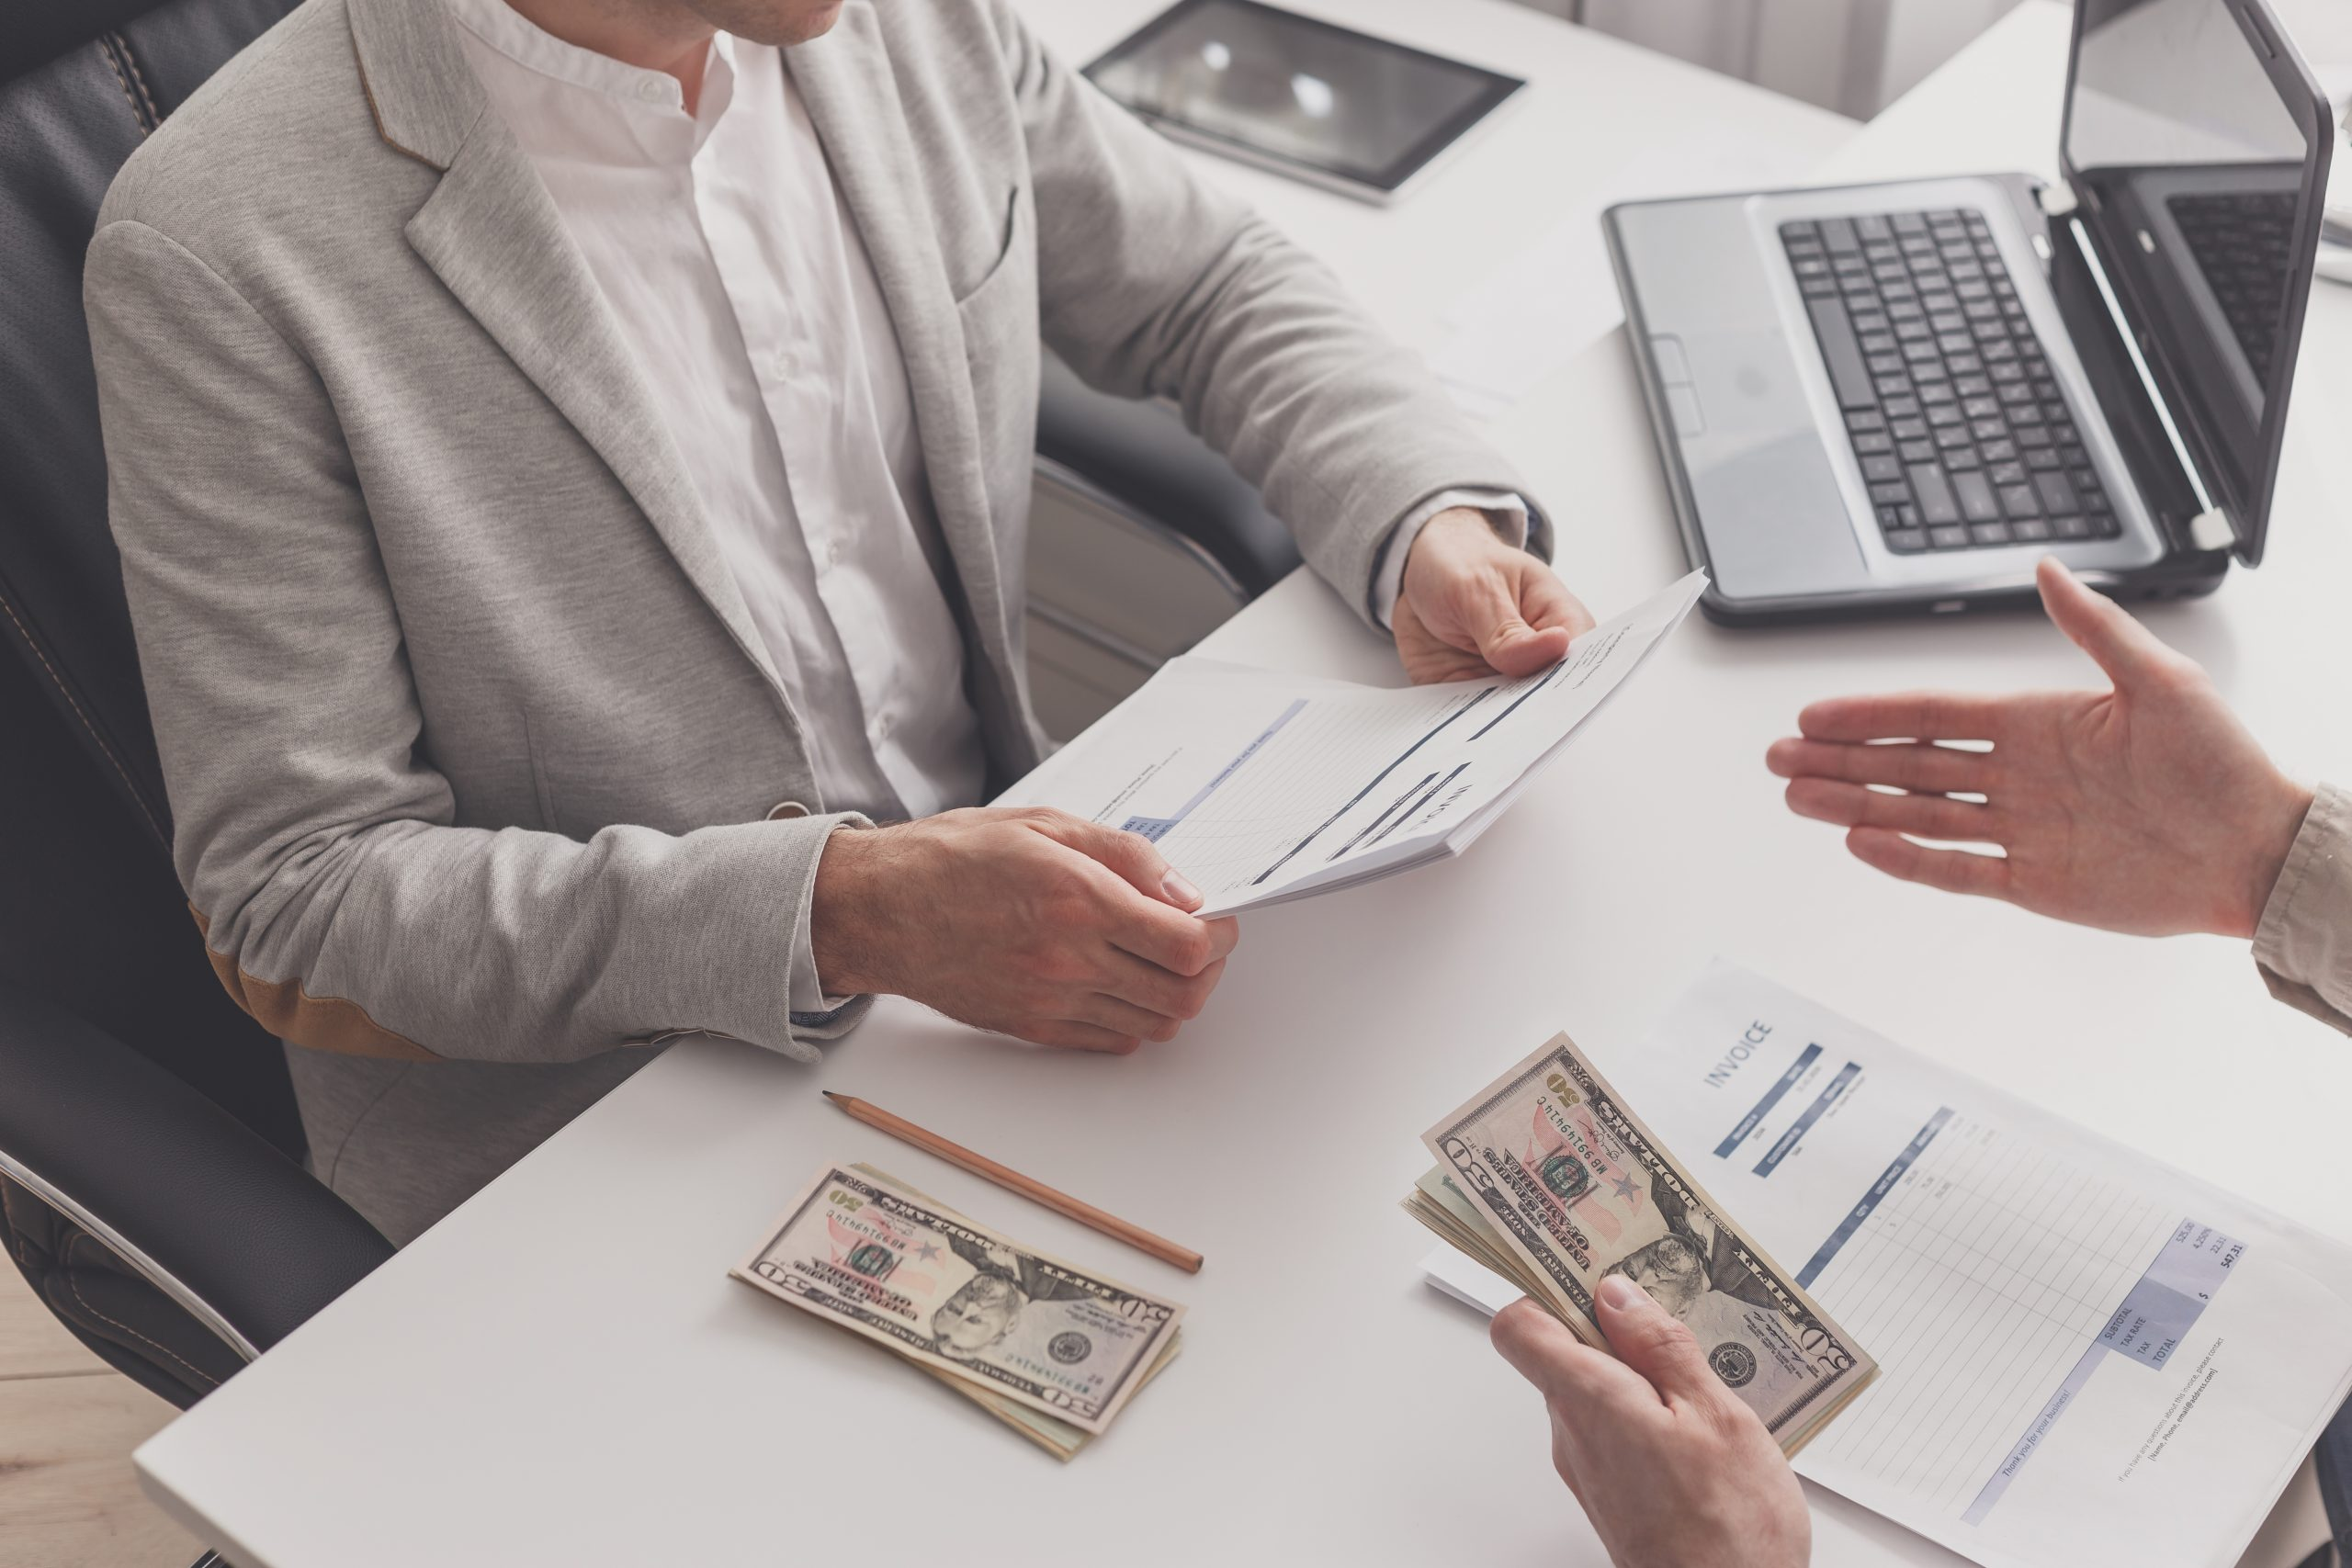 Using An IDOT to Mitigate Real-Estate Loan Costs